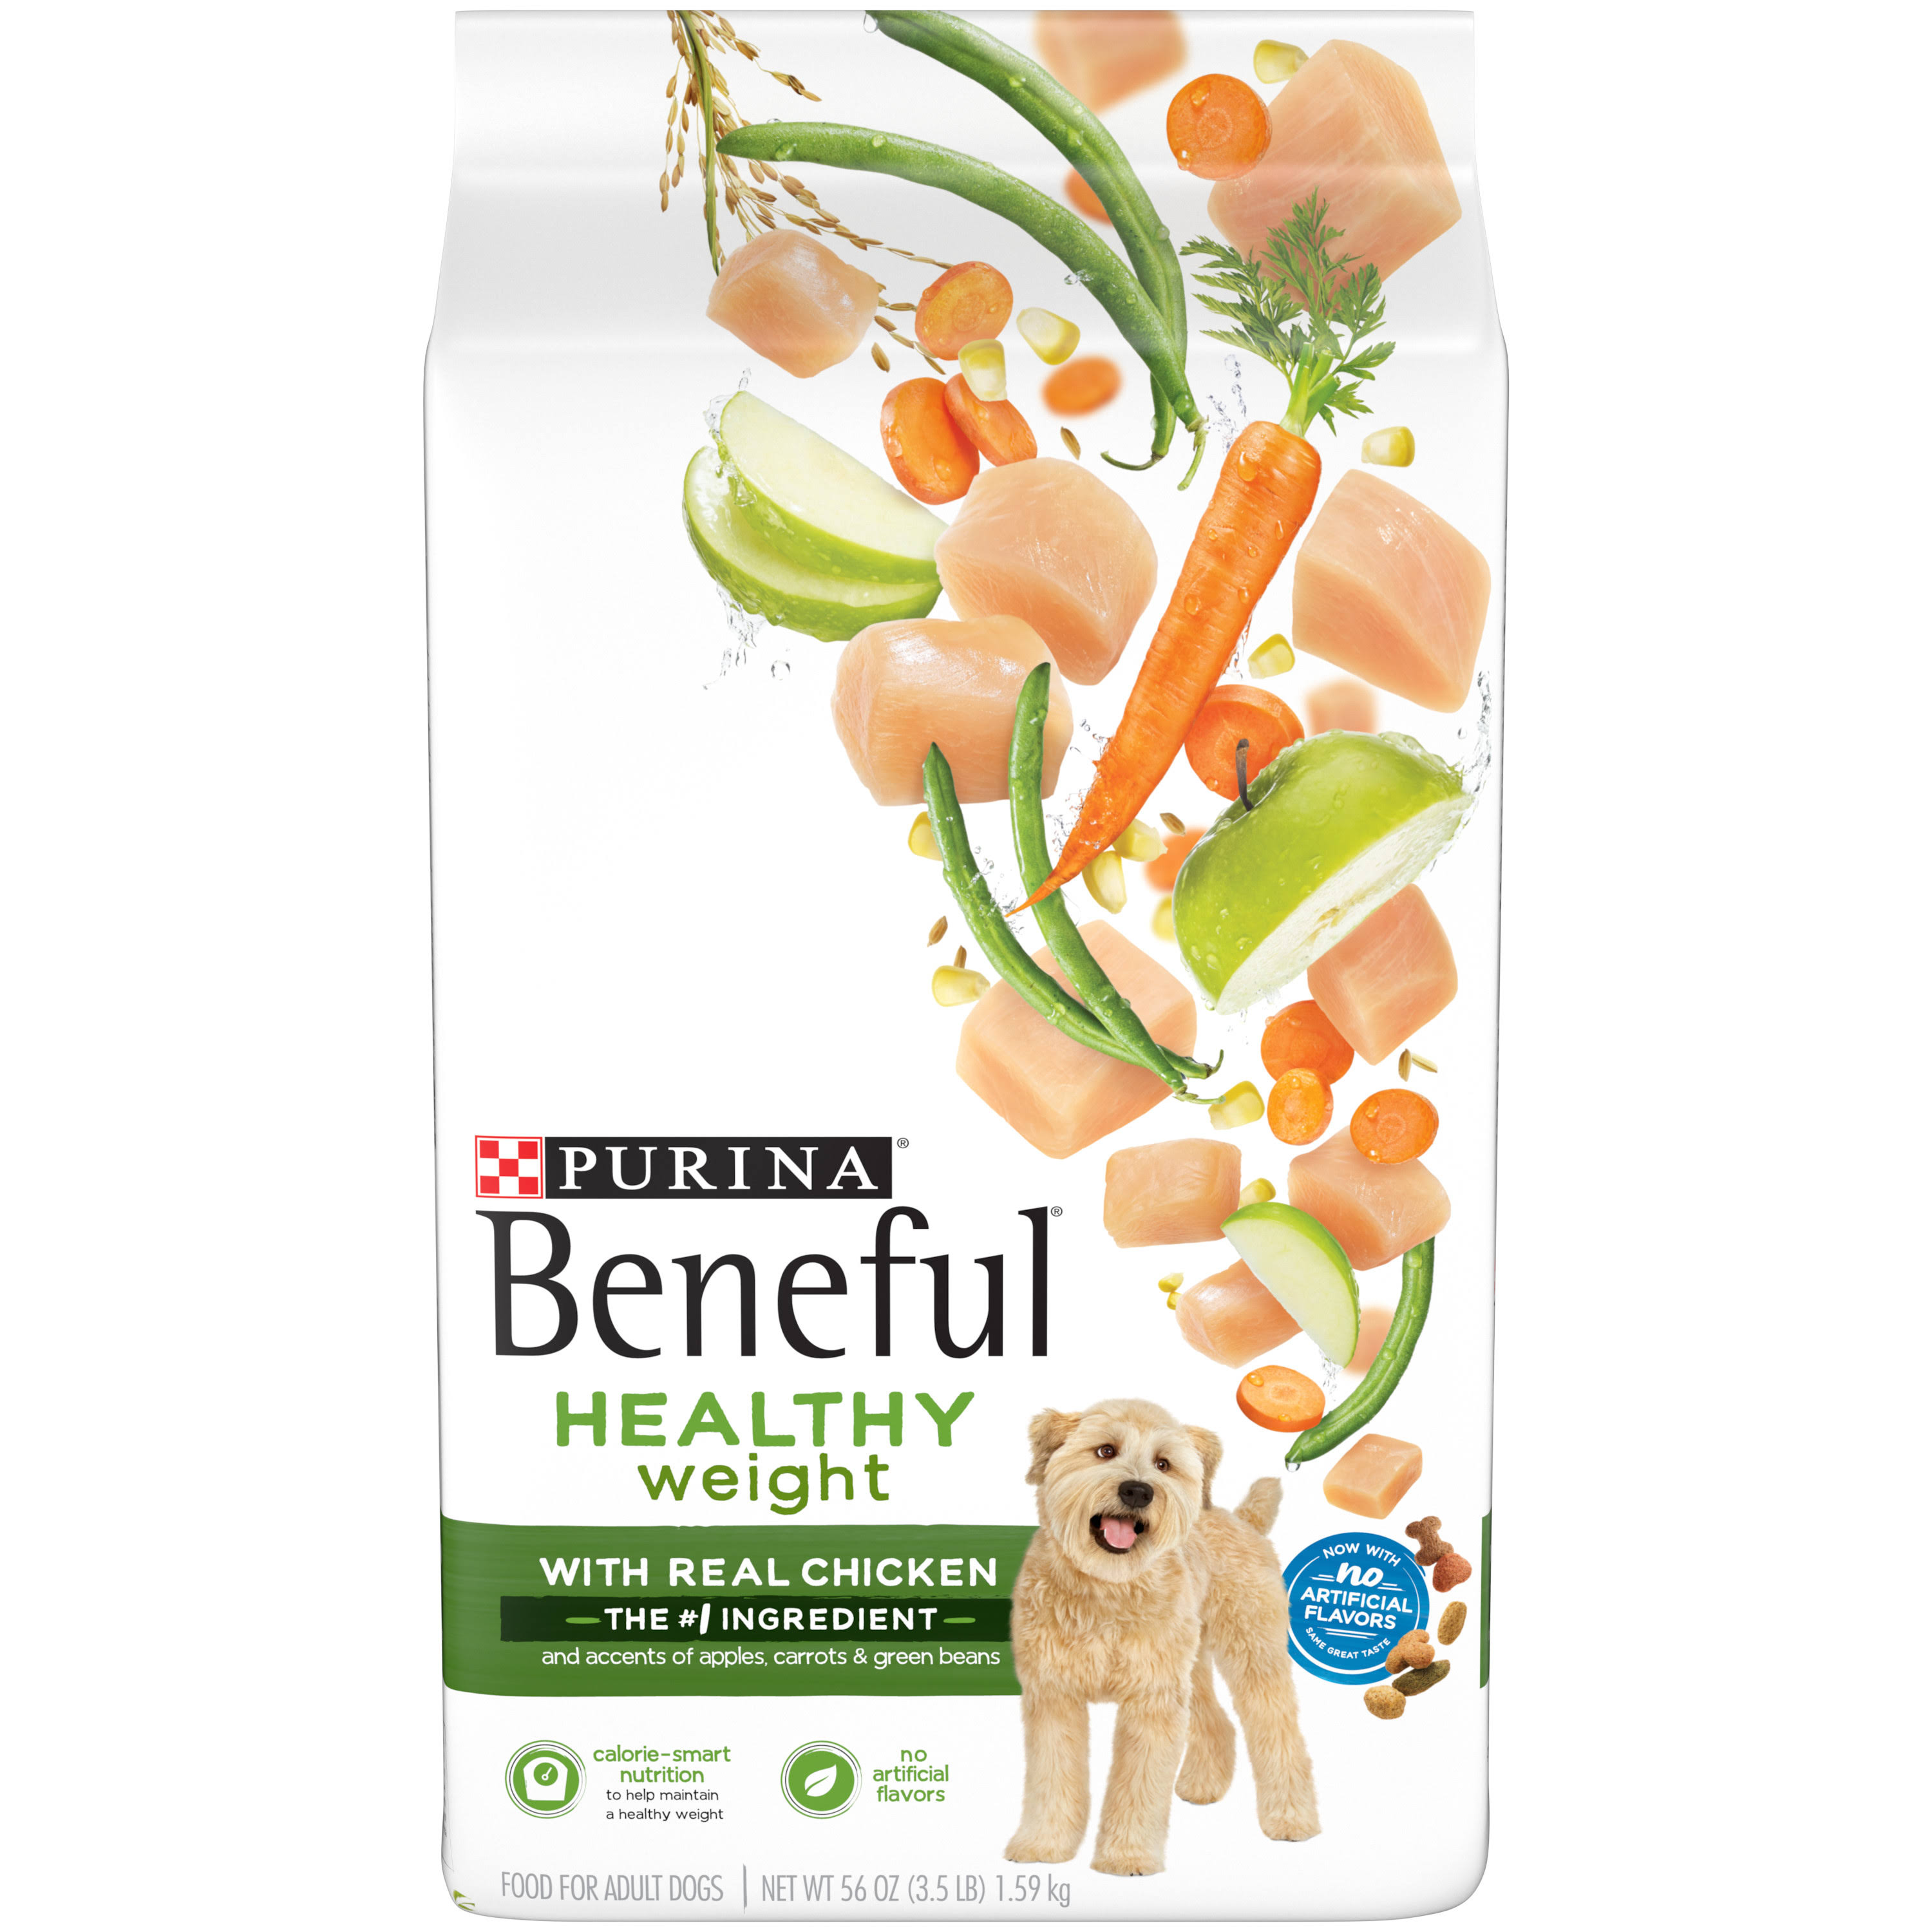 Beneful Original Dog Food - 3.5lbs, 6pk